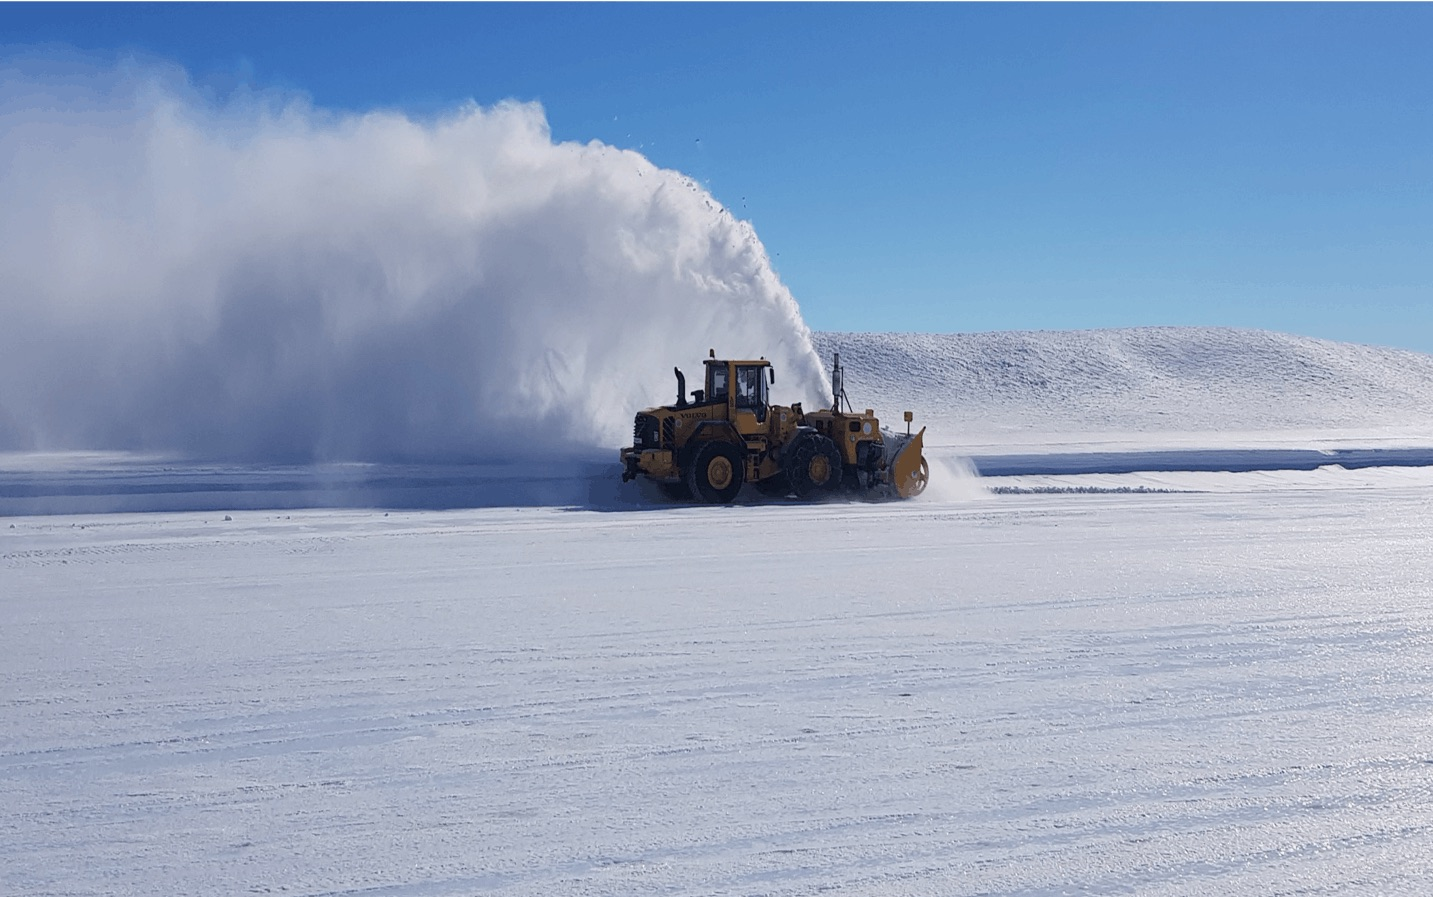 A snow thrower begins preparing the runway at Troll Research Station